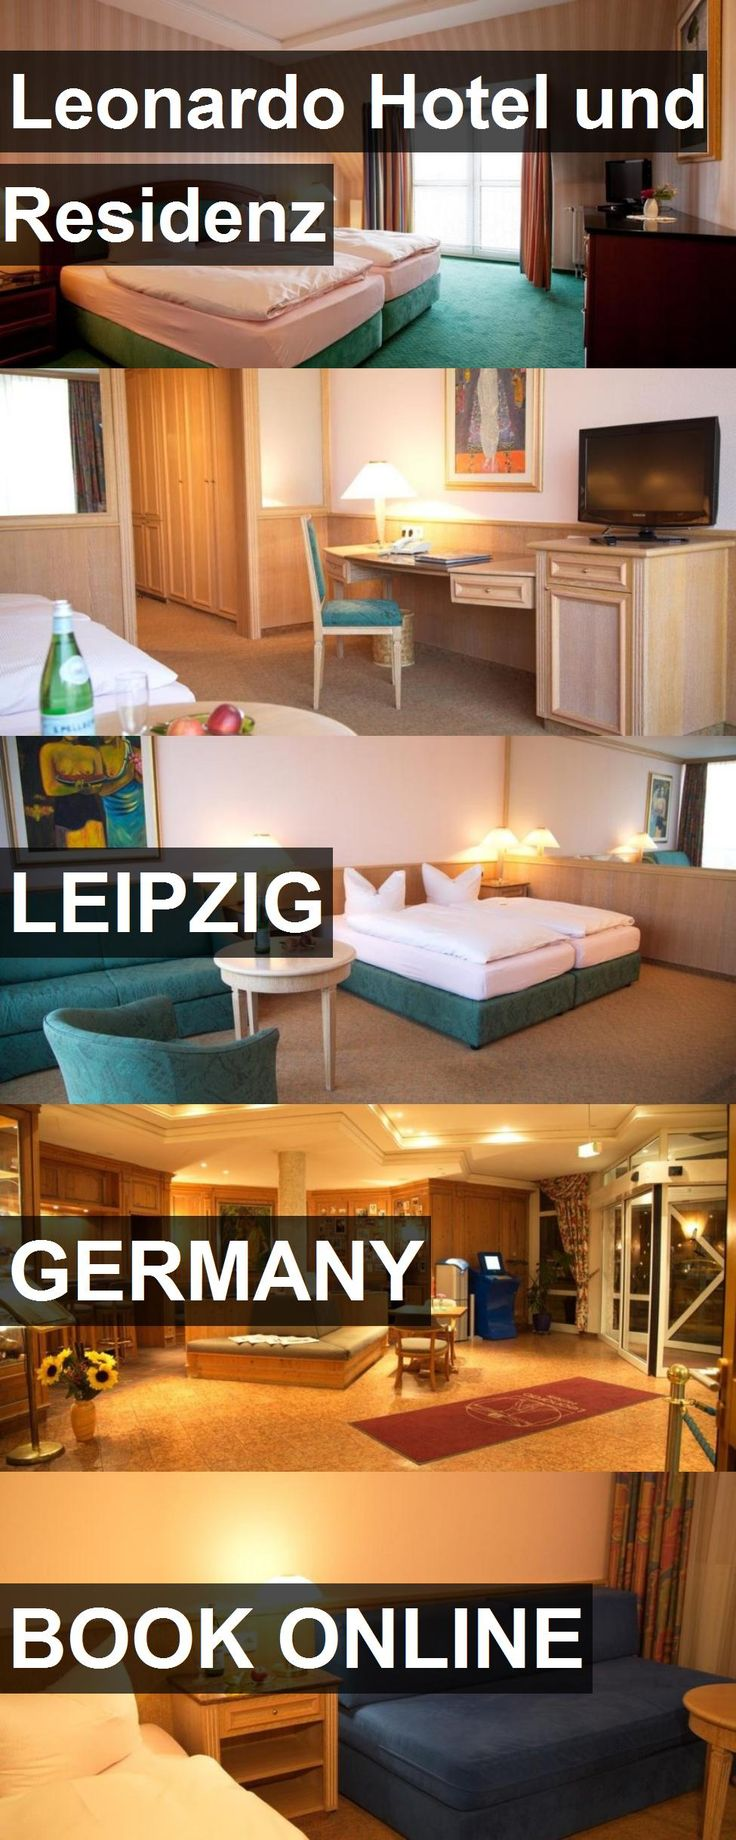 Hotel Leonardo Hotel und Residenz in Leipzig, Germany. For more information, photos, reviews and best prices please follow the link. #Germany #Leipzig #LeonardoHotelundResidenz #hotel #travel #vacation